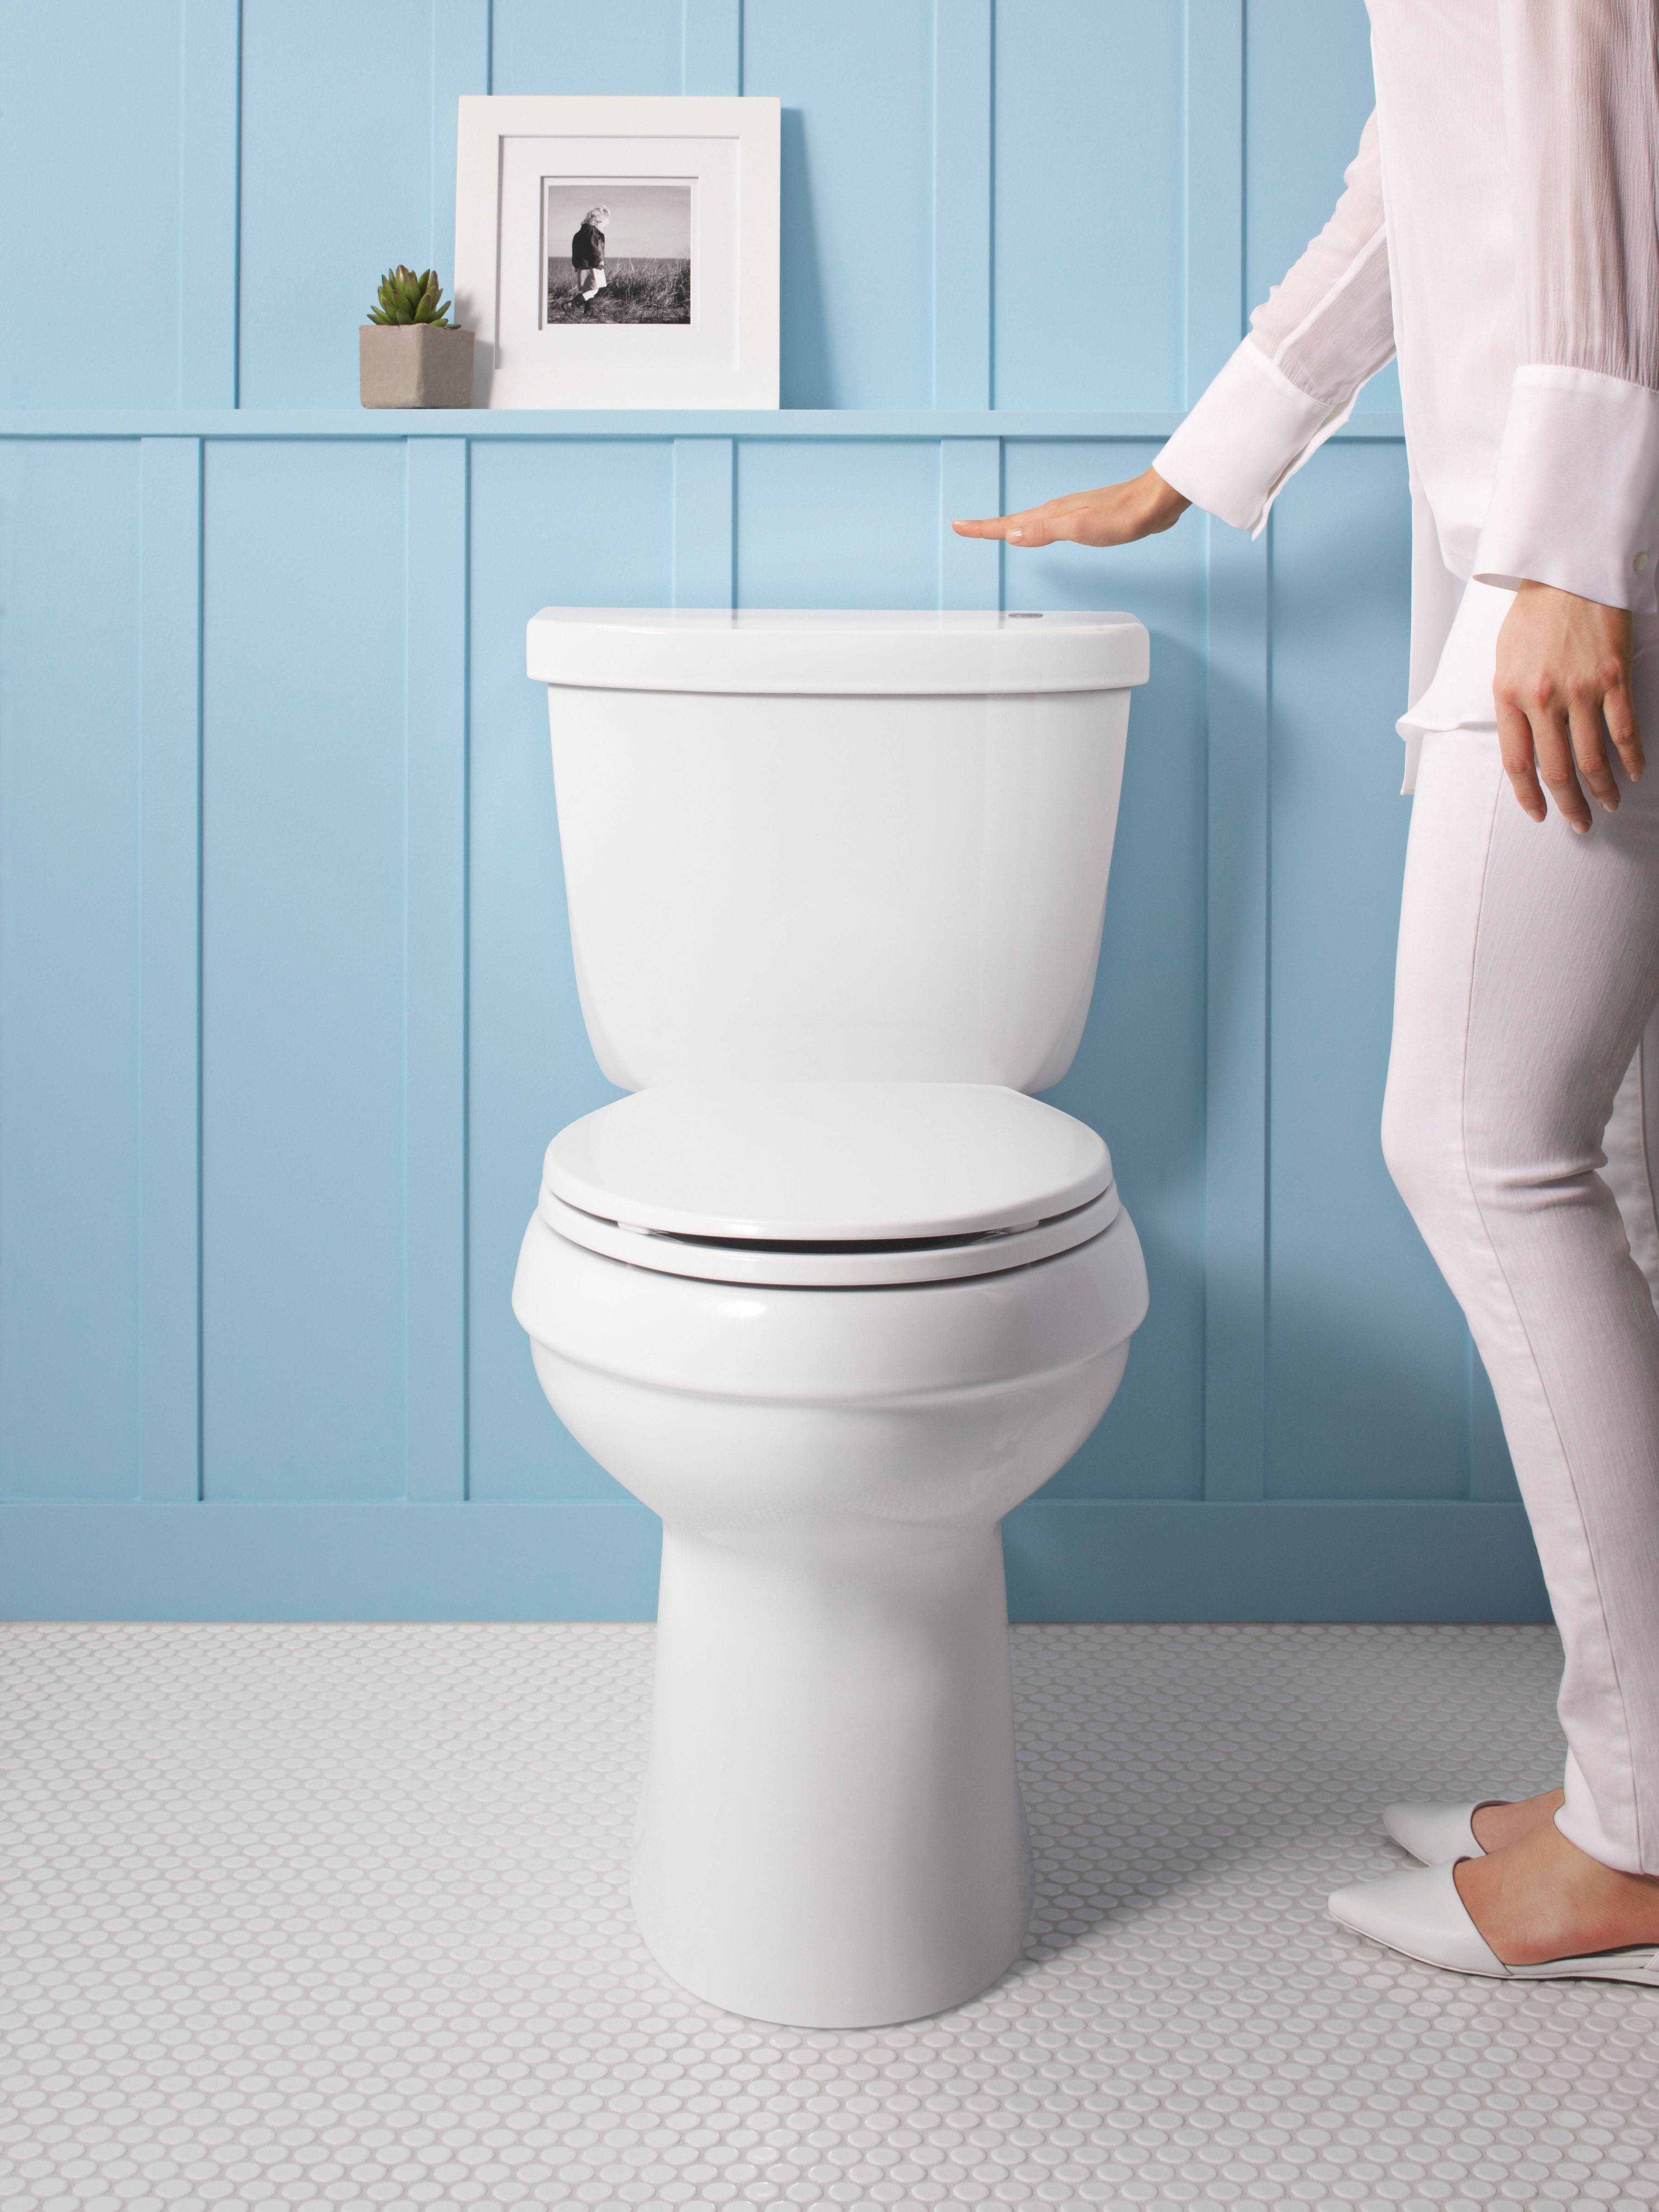 Hands-free flushing, like on this Kohler toilet, is activated by the wave of the hand. It is an increasingly popular feature to help decrease the spread of germs.